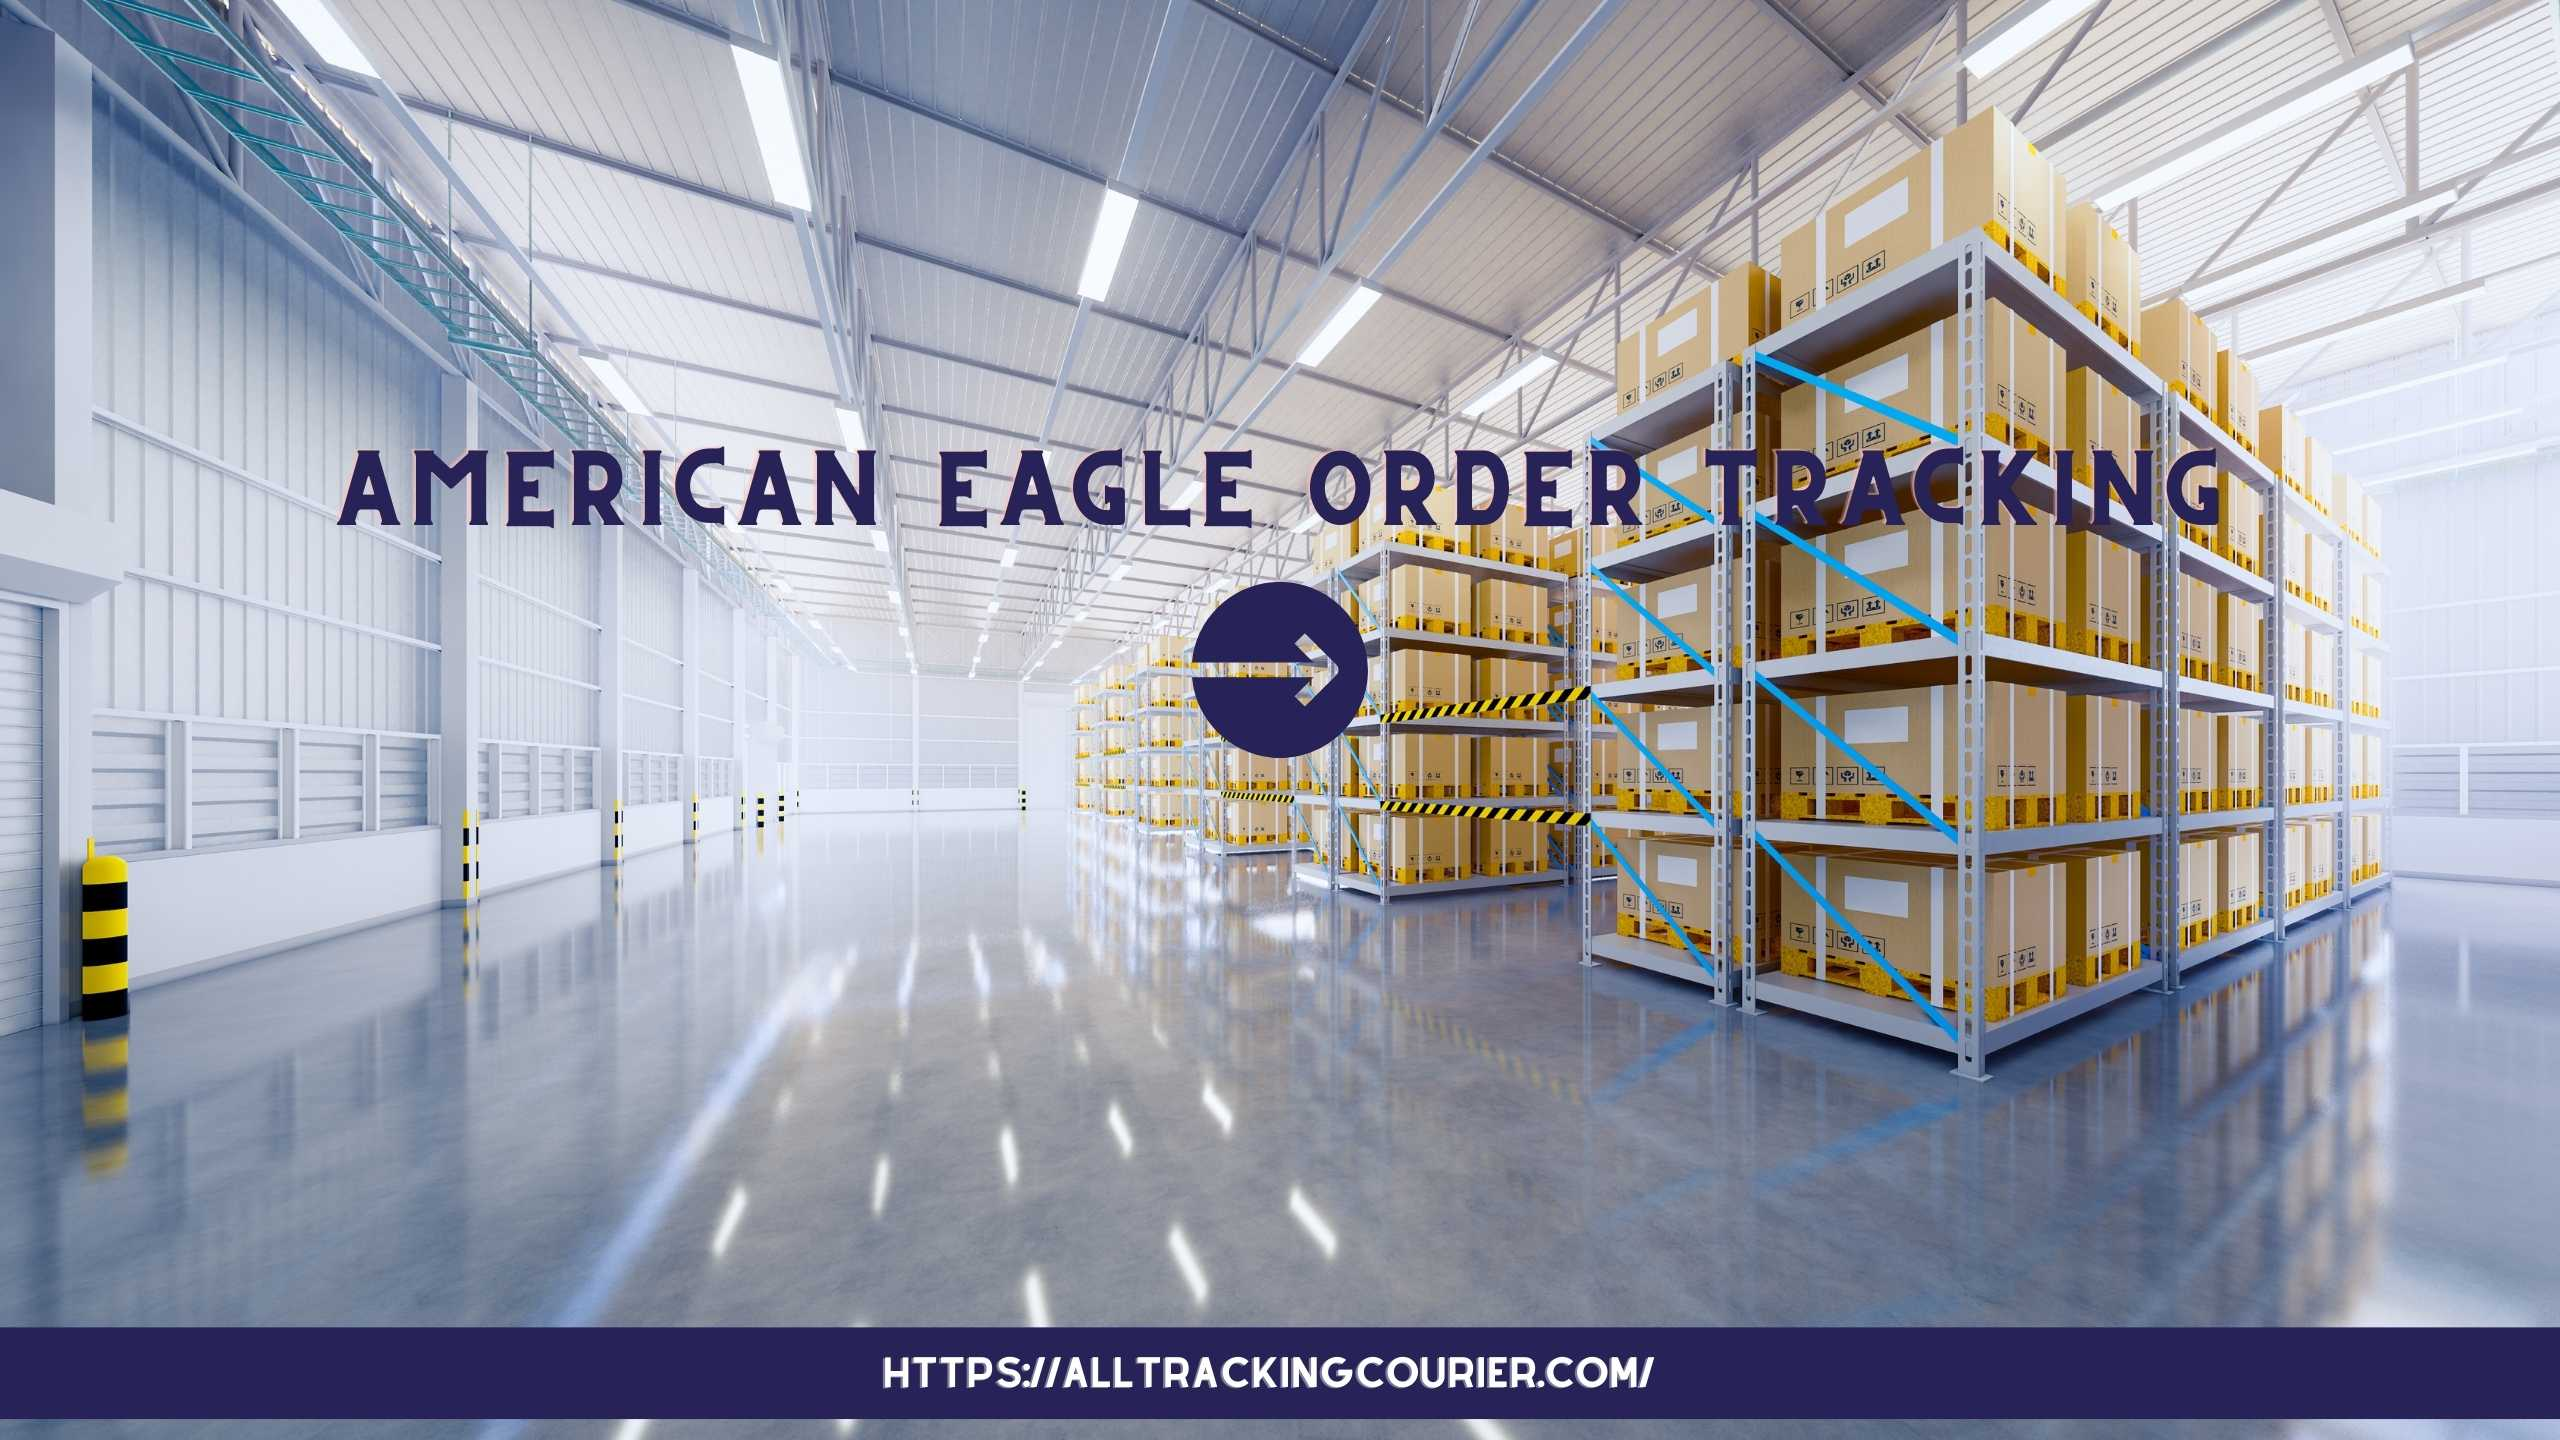 American Eagle Order Tracking